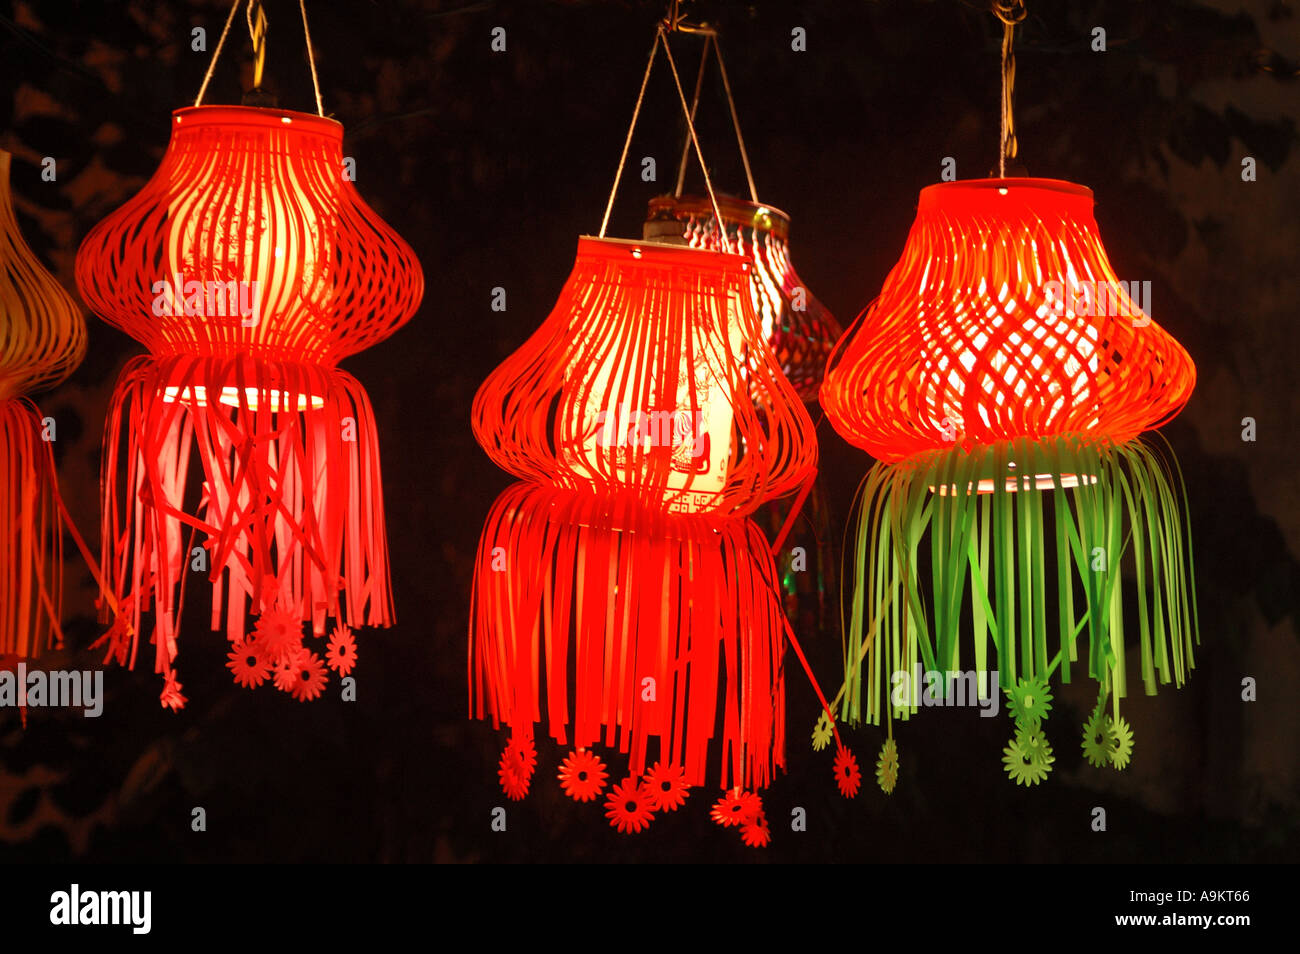 Attractive Diwali Indian Festival Of Lights Christmas Colourful Paper Lamps Red  Lanterns Kandeel Three Pieces Hanging For Sale India Asia